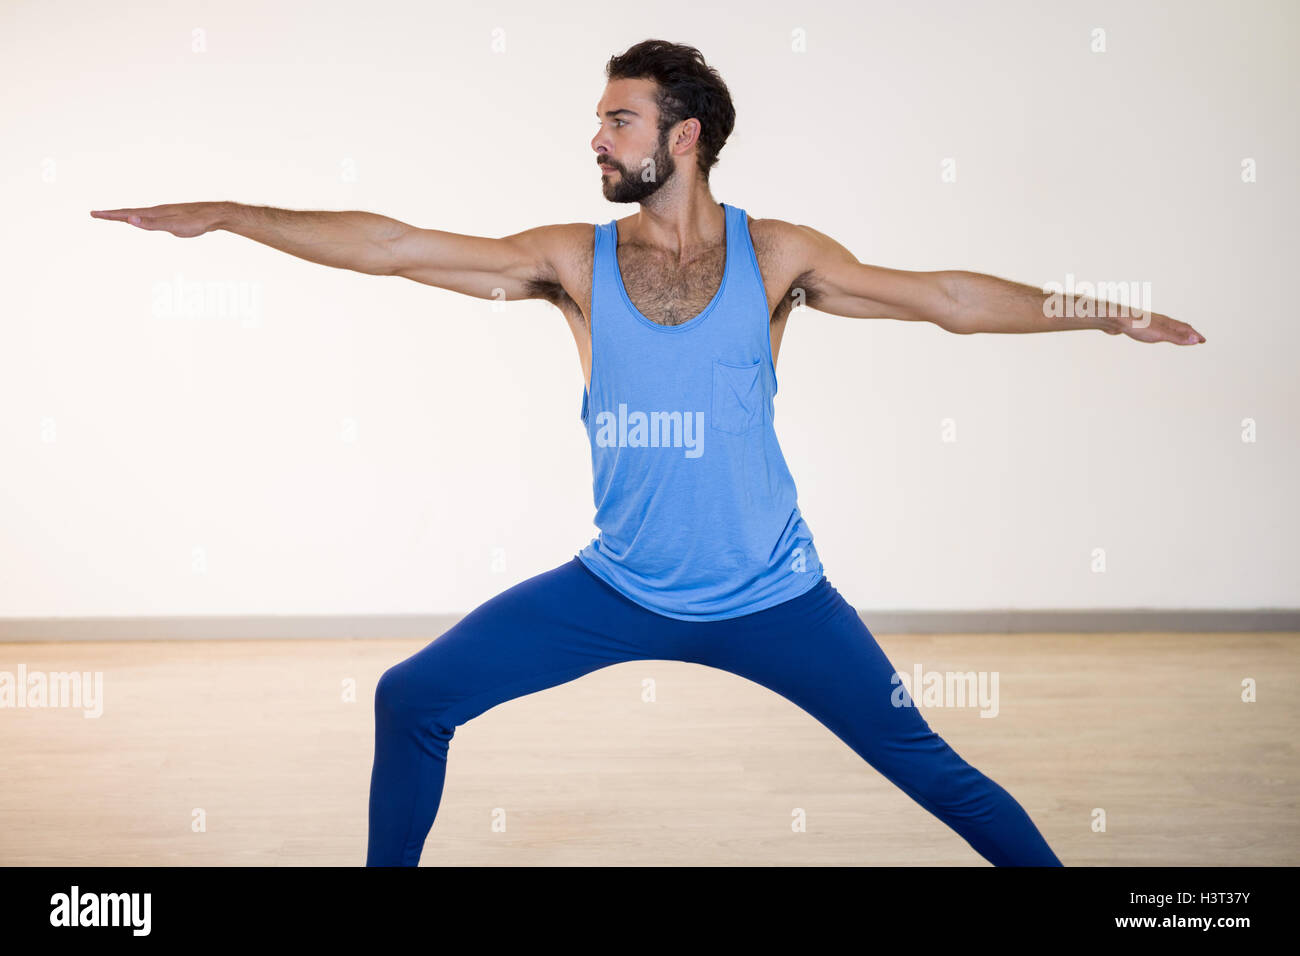 Man performing warrior pose - Stock Image